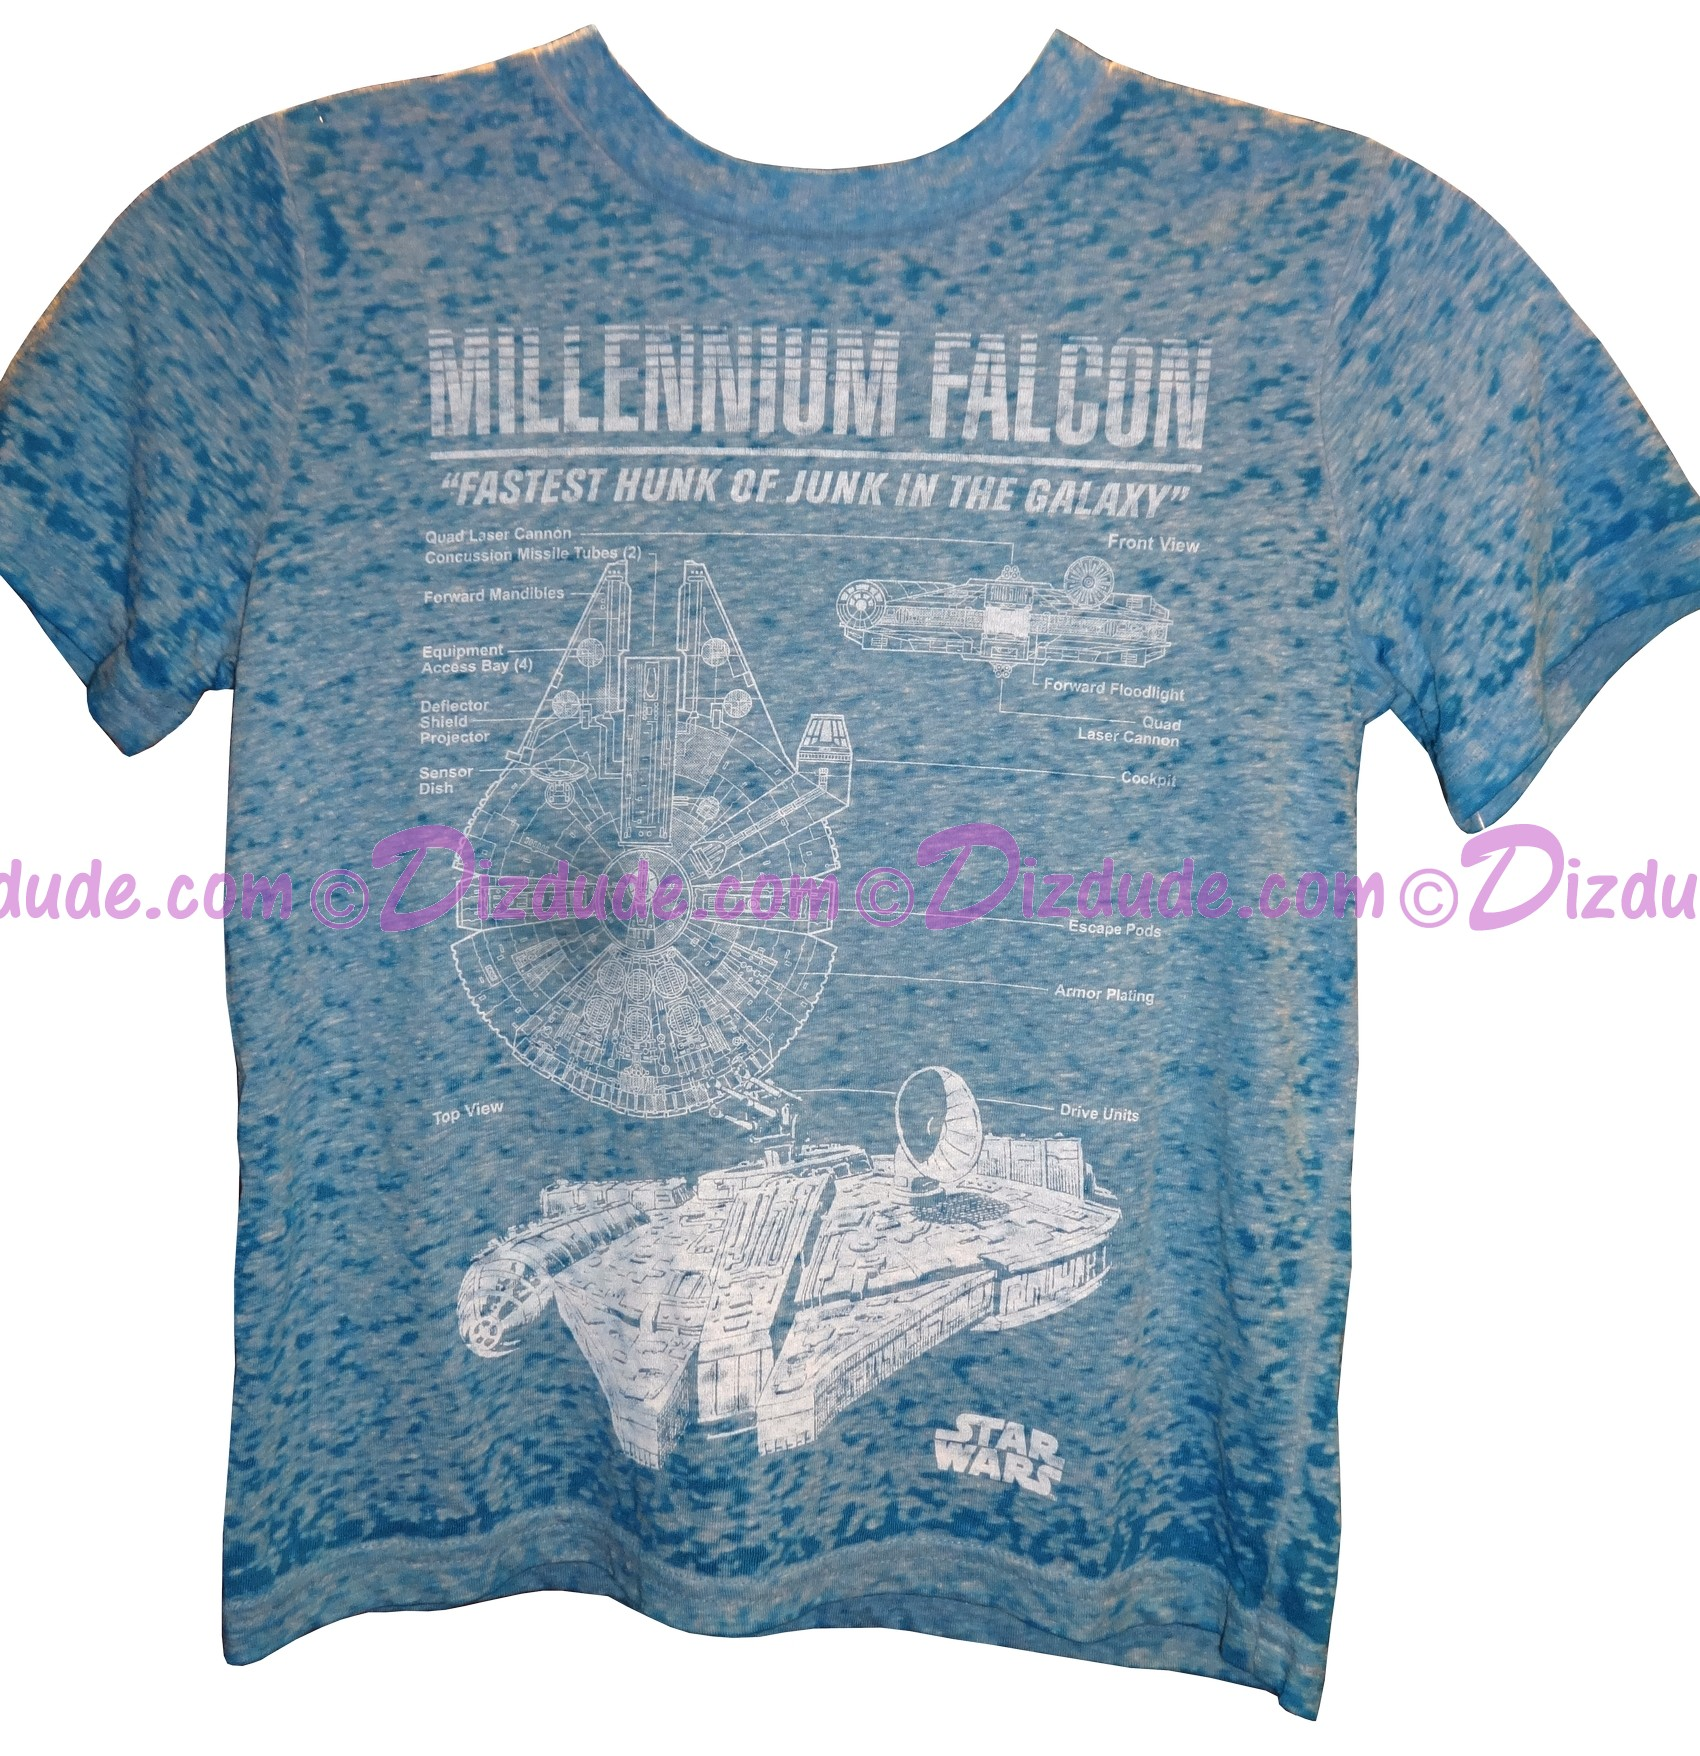 "Millennium Falcon ""Fastest Hunk of Junk in the Galaxy"" Youth T-Shirt (Tshirt, T shirt or Tee) - Disney's Star Wars © Dizdude.com"